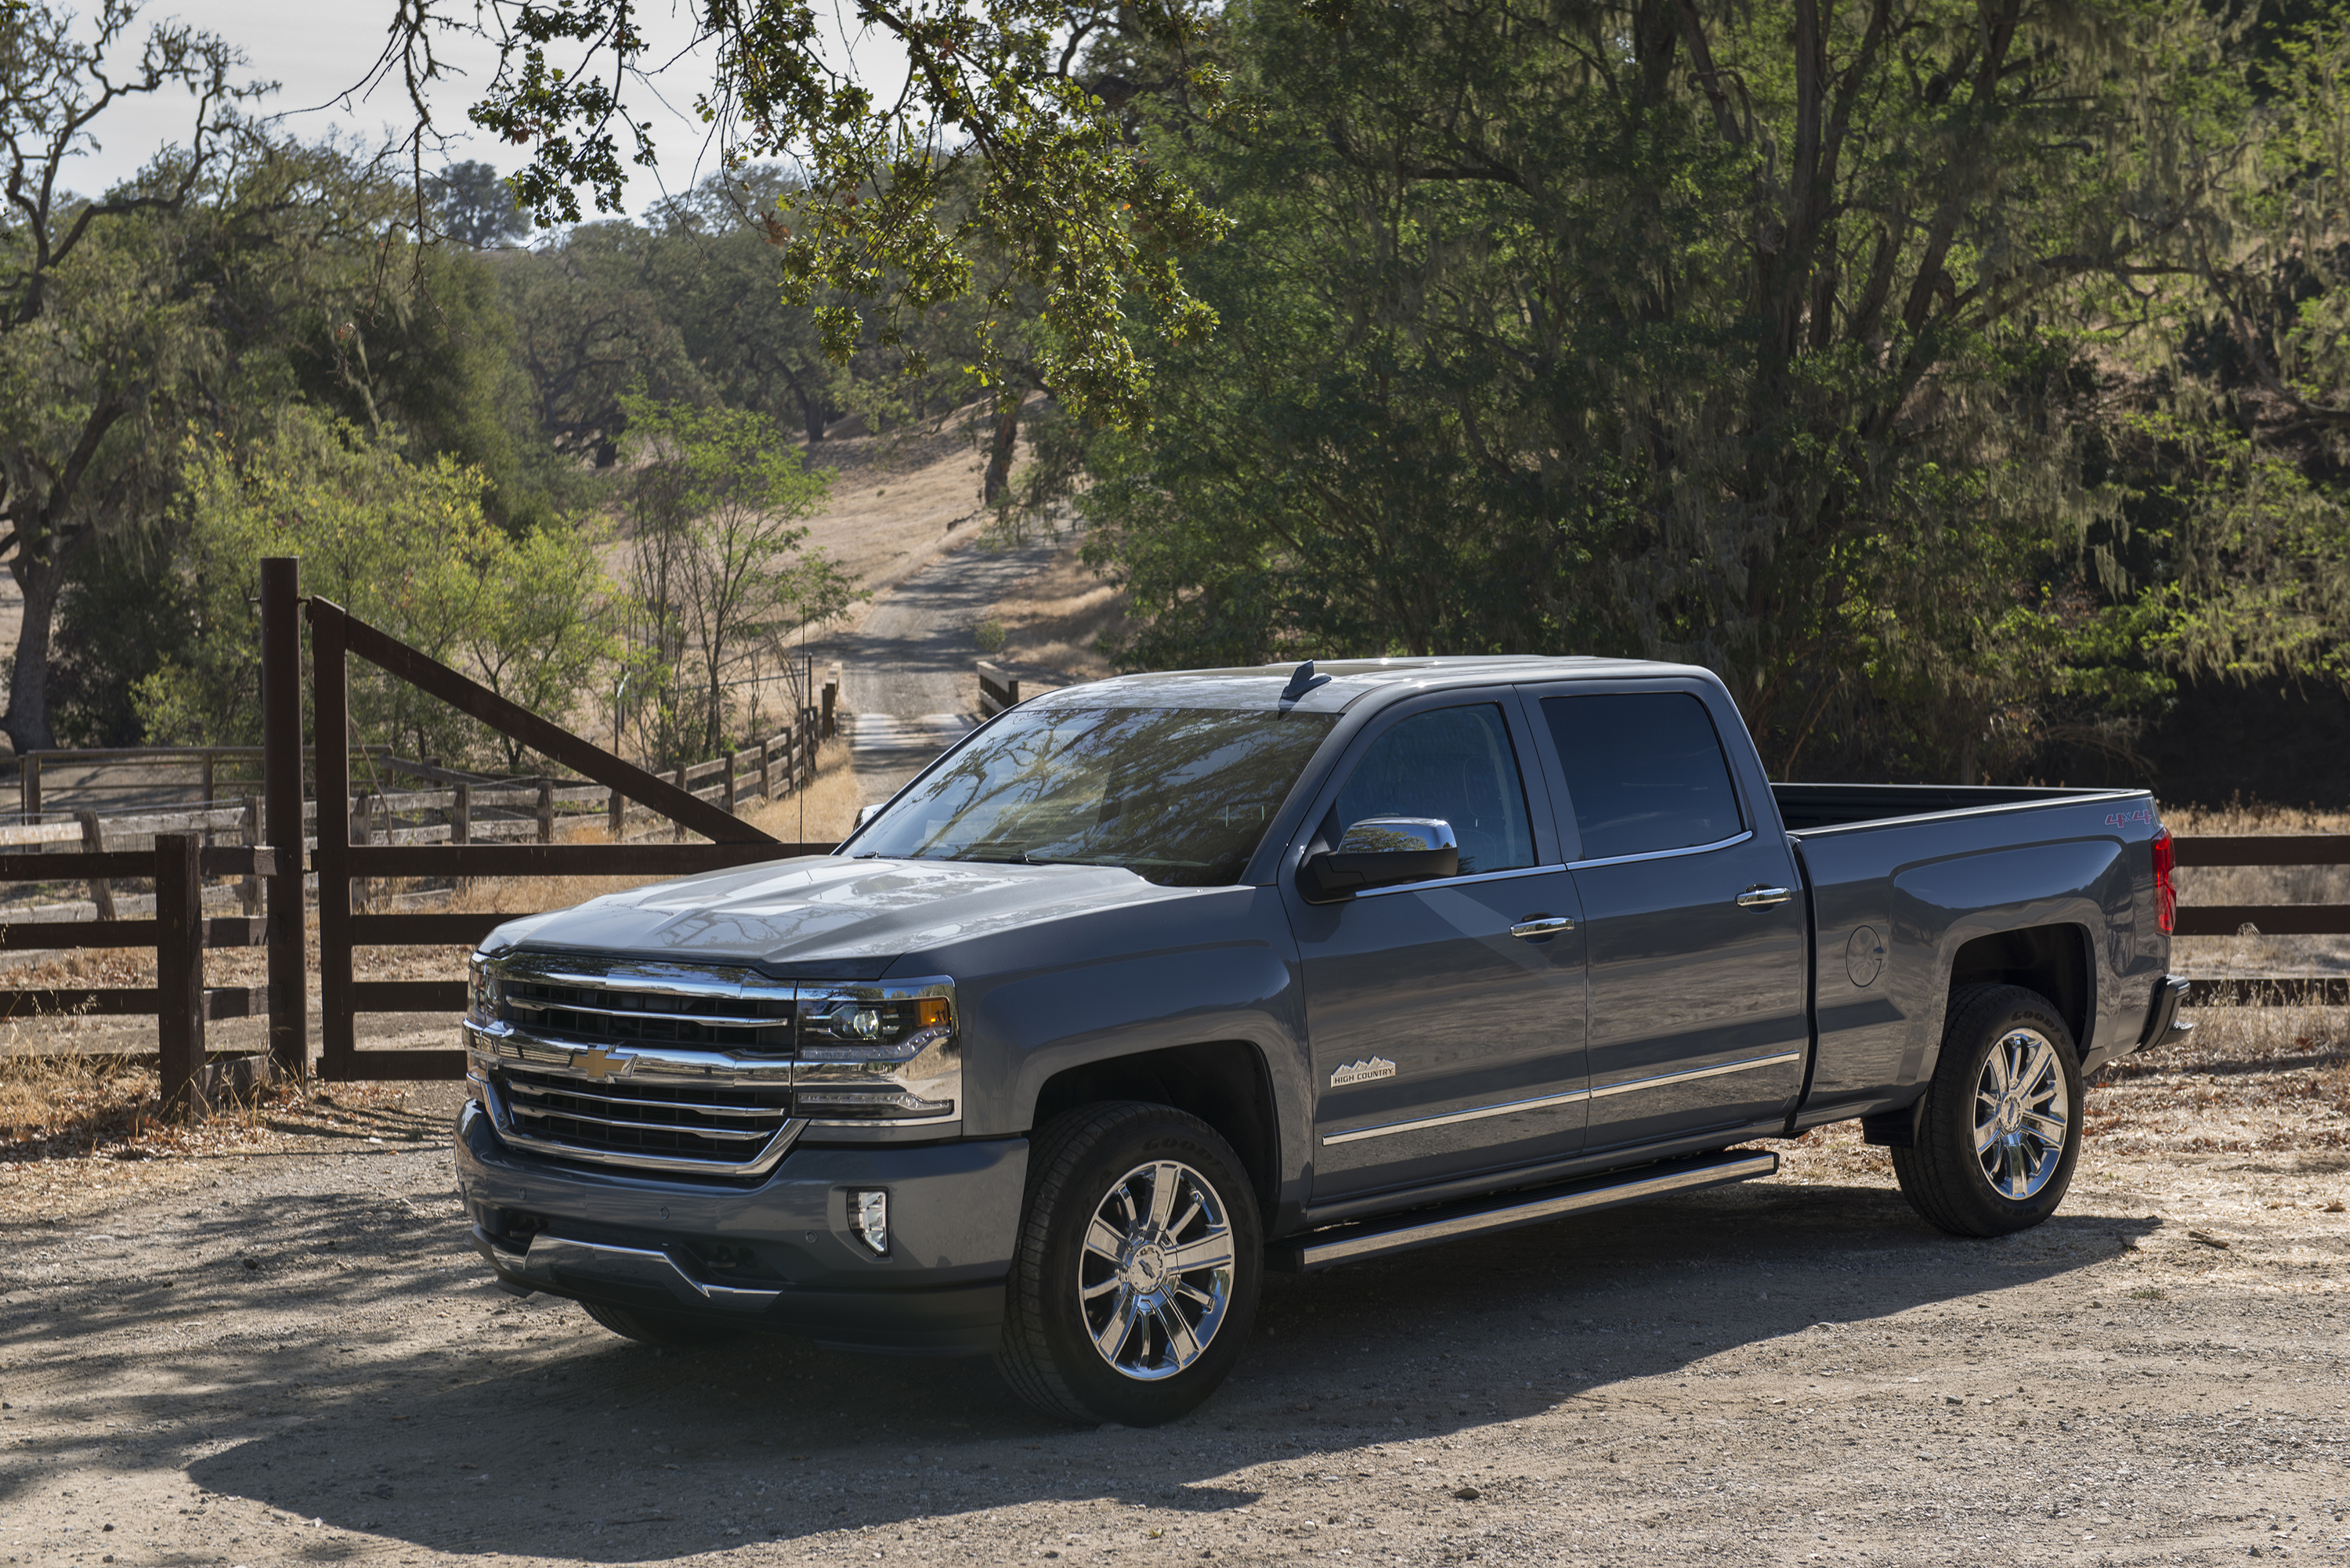 used us highcountry bestluxurycars about high silverado chevrolet country